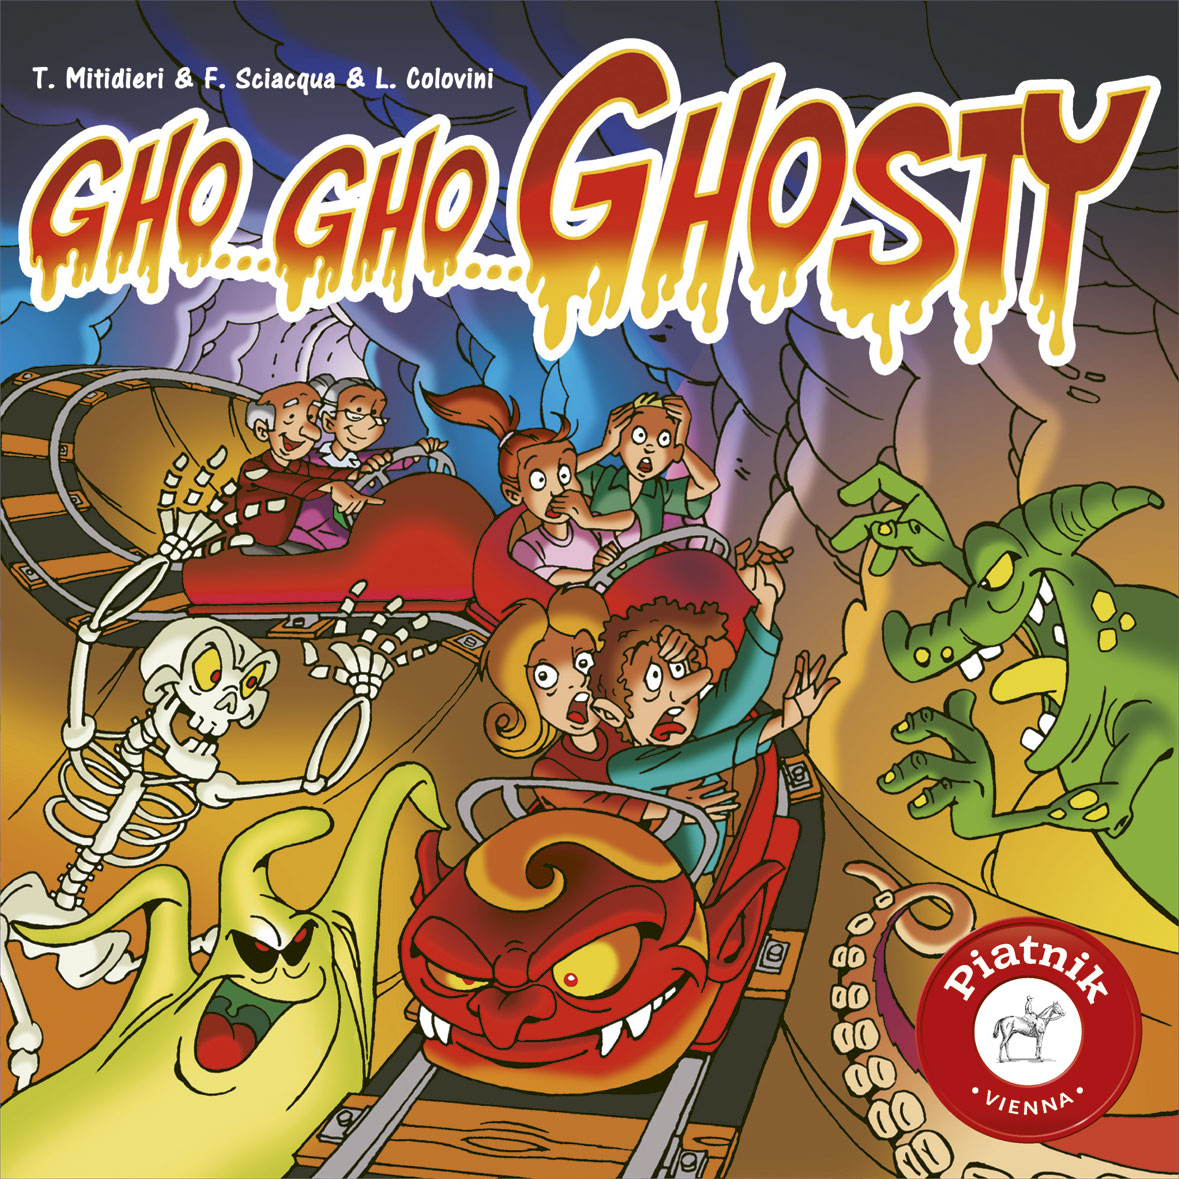 gho_gho_ghosty_659096_cover.jpg